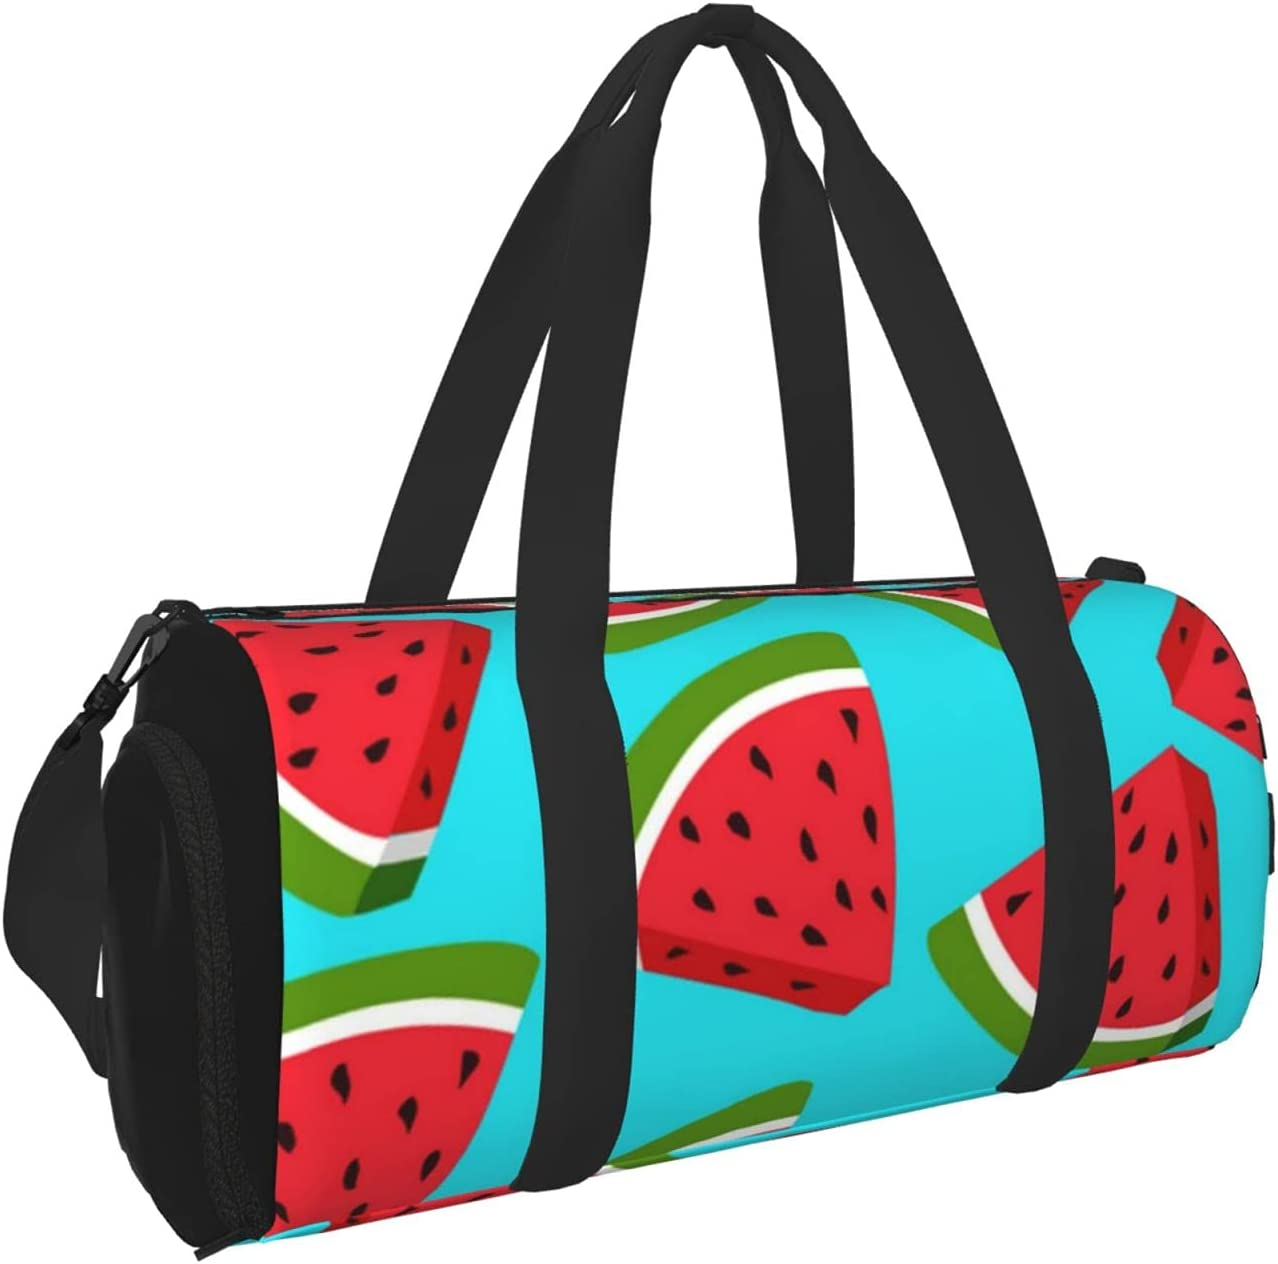 Kenaat Watermelon Fruit Sports Gym Bag With Separated Gy 40% OFF Cheap Sale Wet Popular product Dry